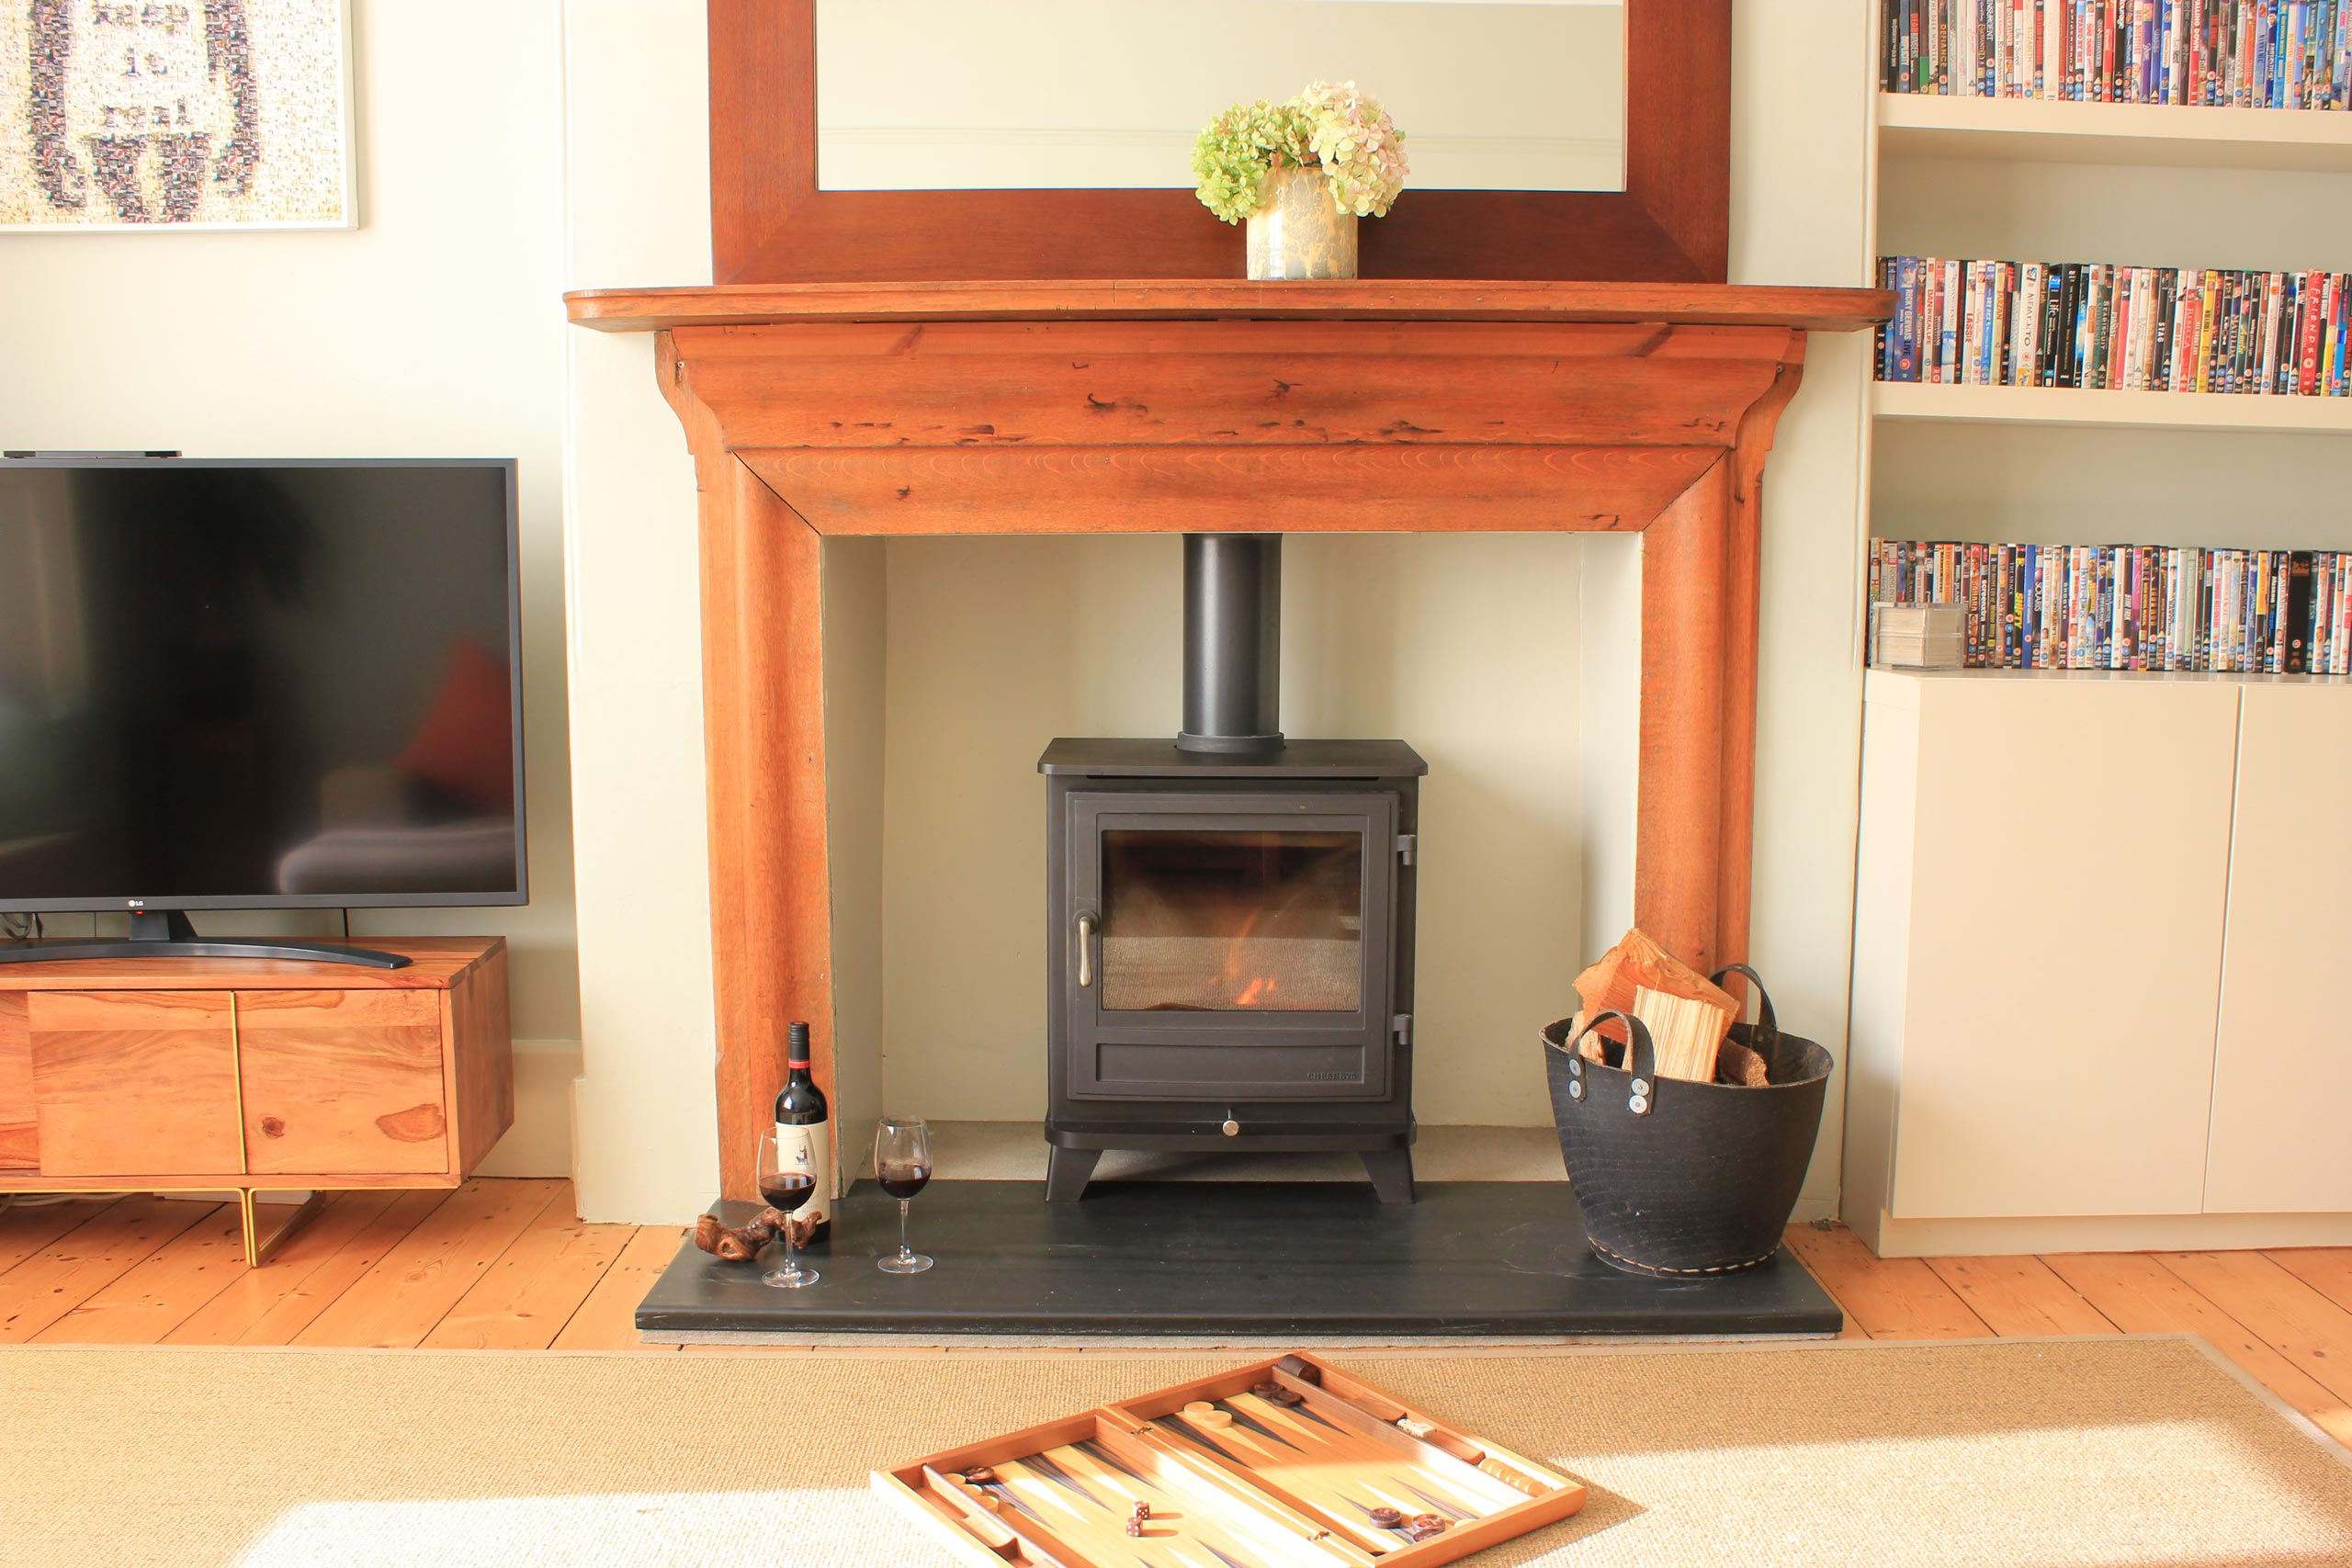 Cosy fires and wood burners